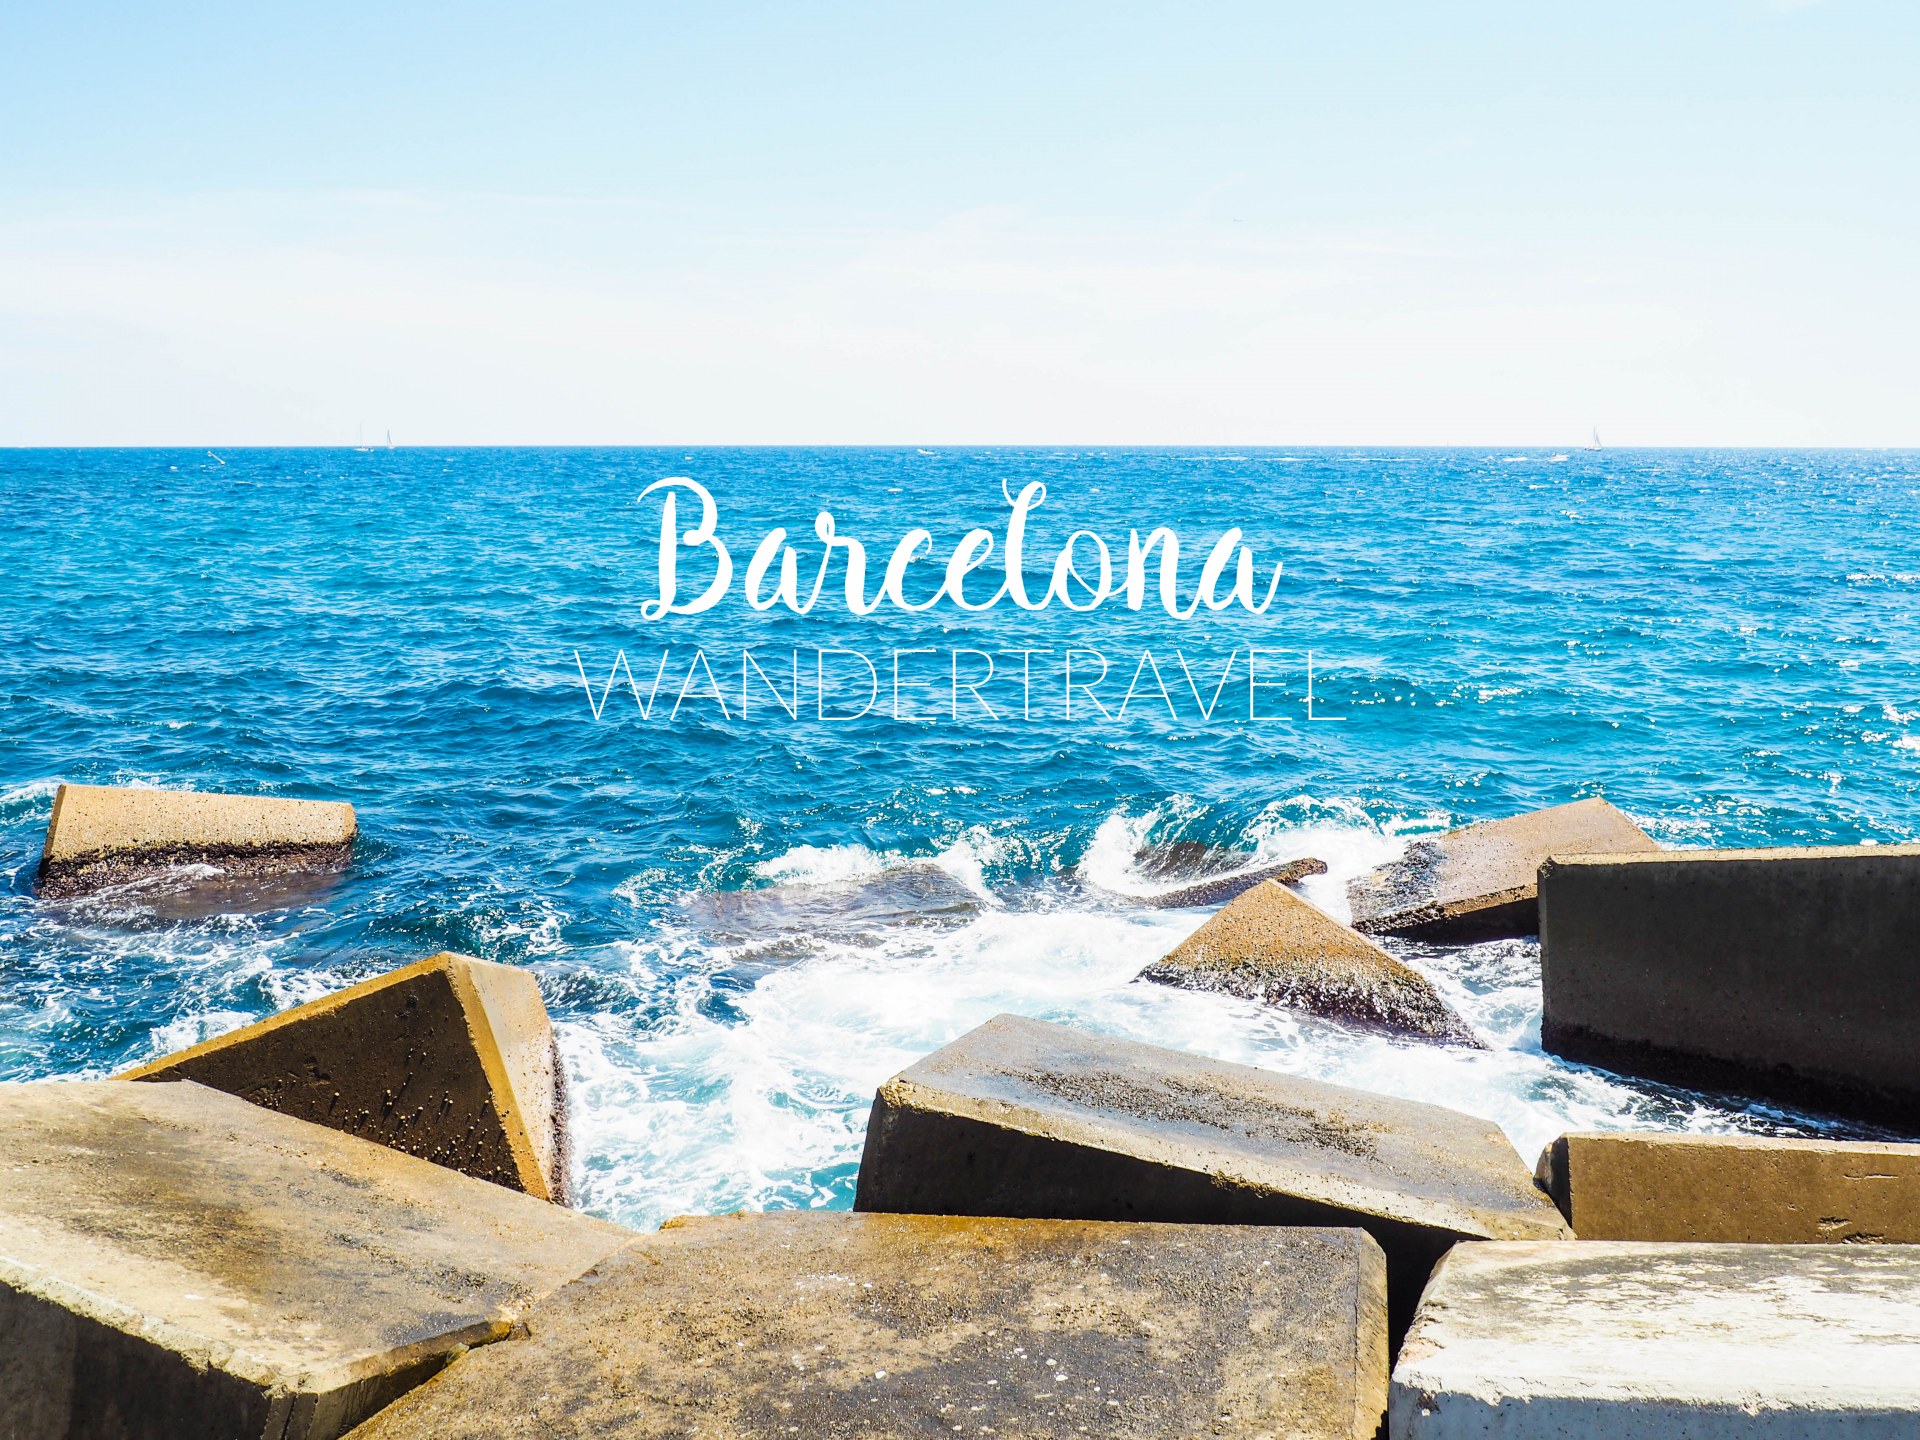 The other side of Barcelona